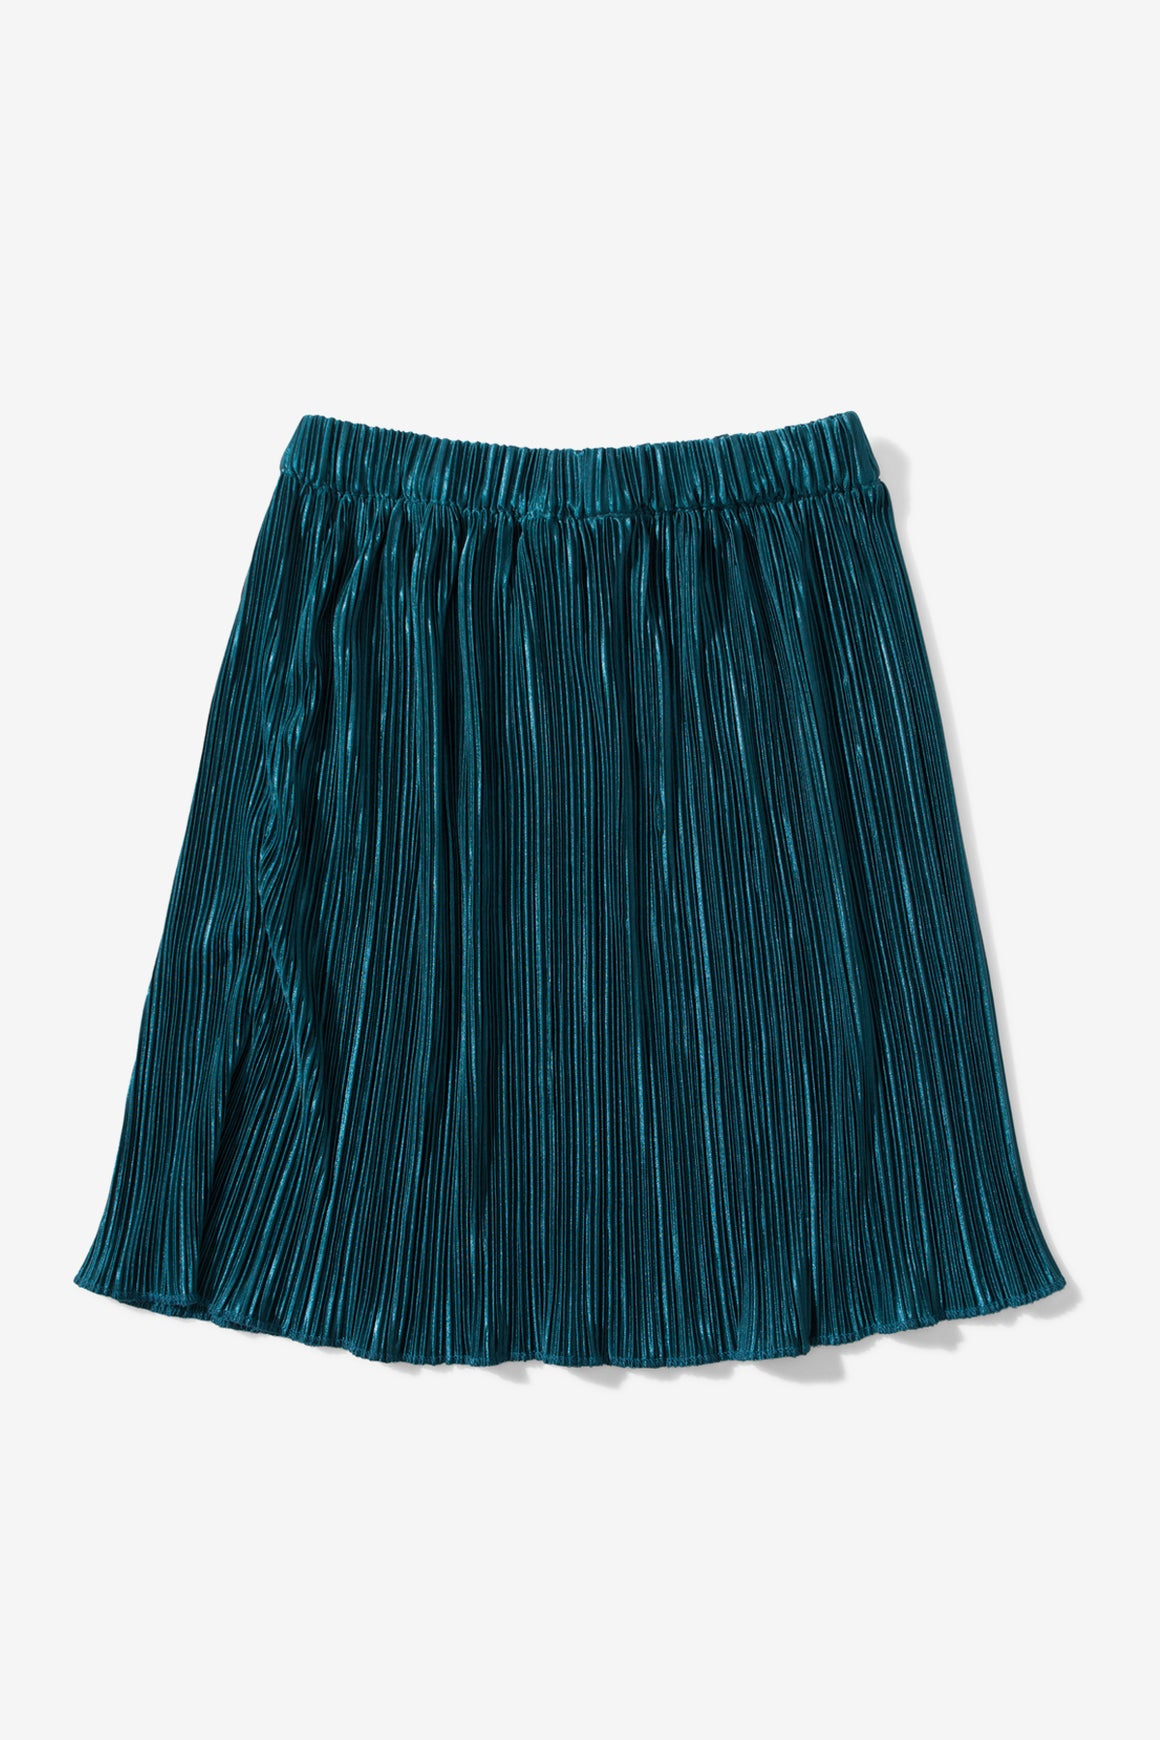 Munster Kids Coco Skirt - Teal